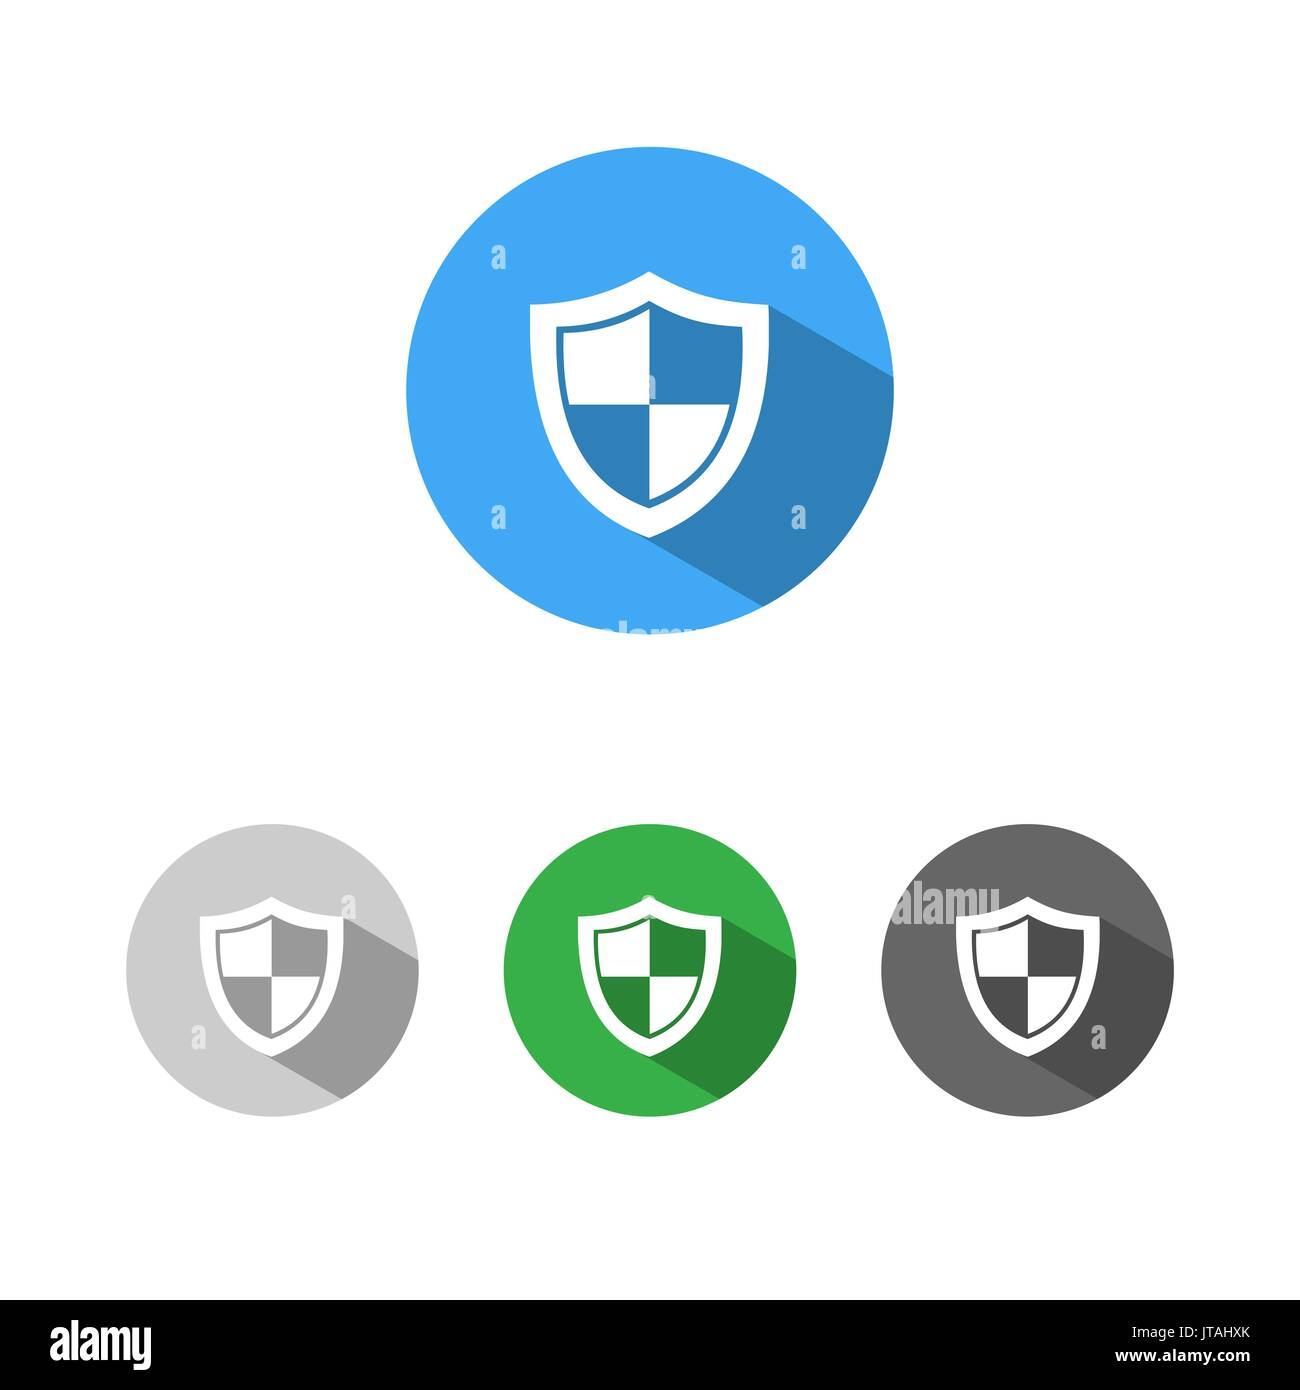 High security shield icon with shade on colored buttons - Stock Image